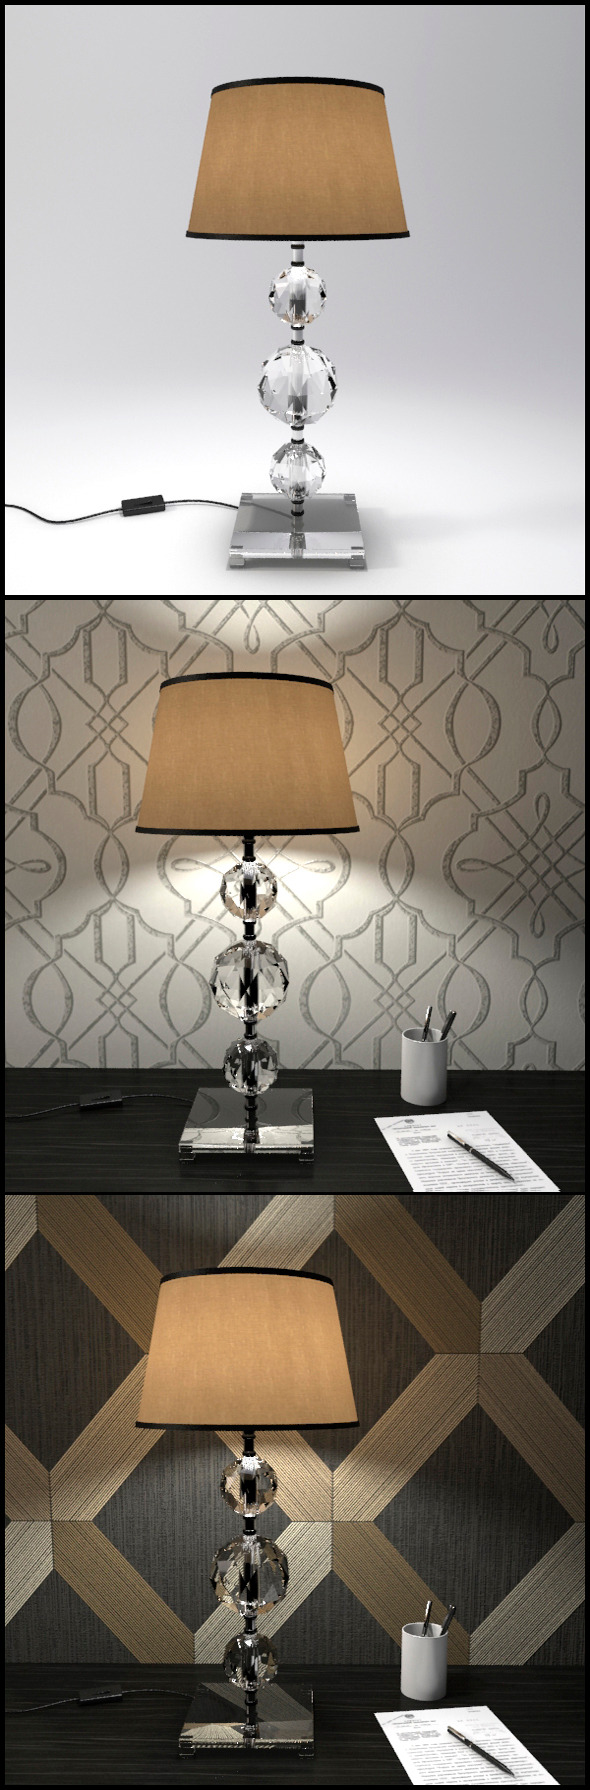 Glass Geosphere Table Lamp #5 - 3DOcean Item for Sale